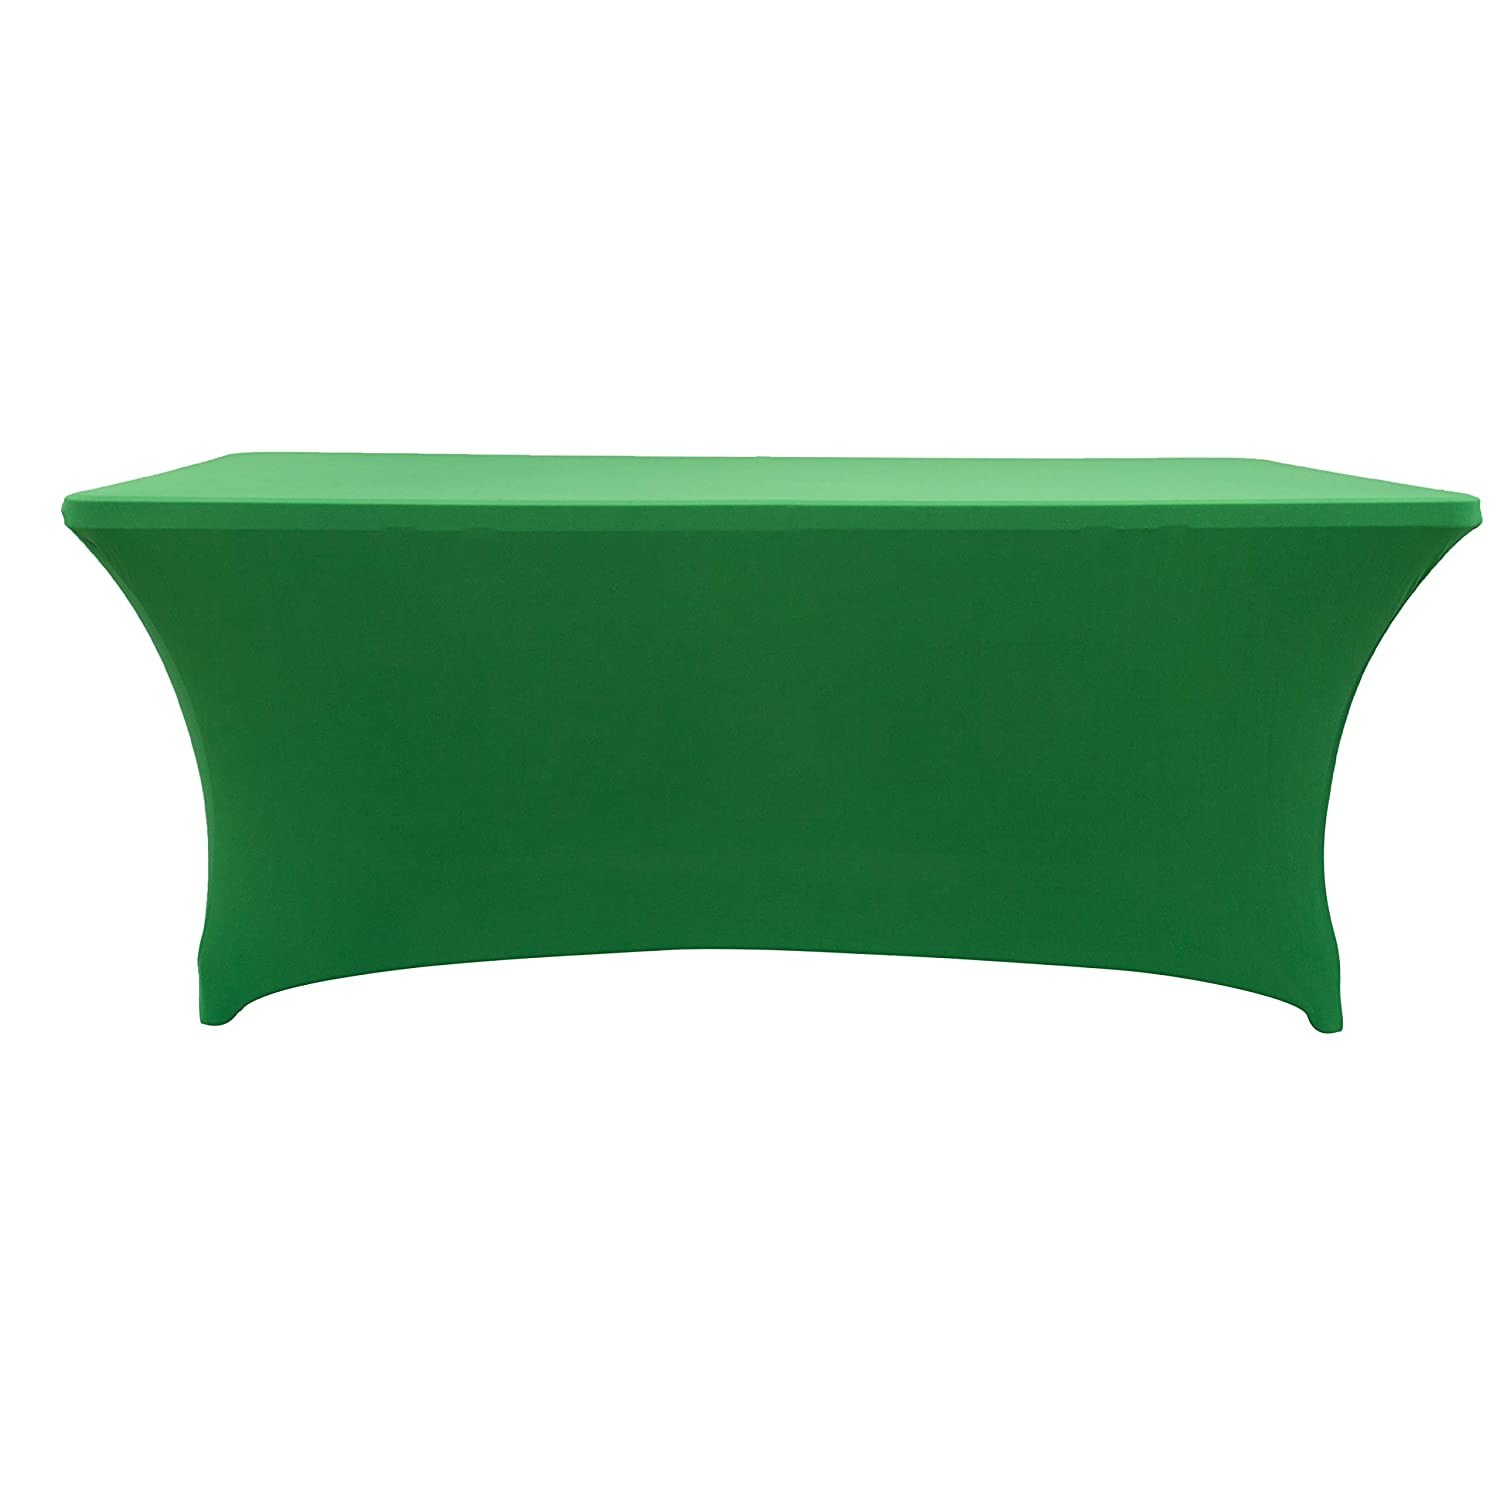 Rectangular Stretch Spandex Table Cover Fitted Tablecloth for Wedding Party Events (8ft, Green)